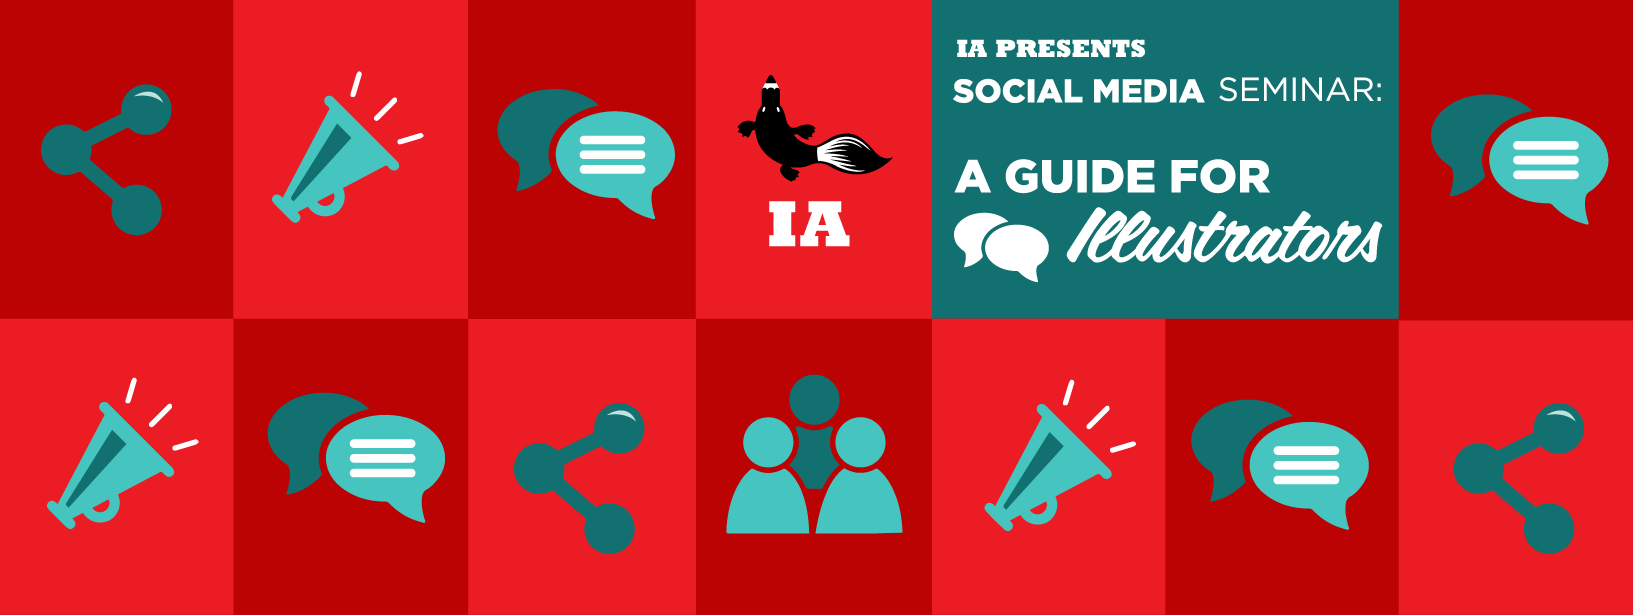 Social Media: A Guide For Illustrators Seminar